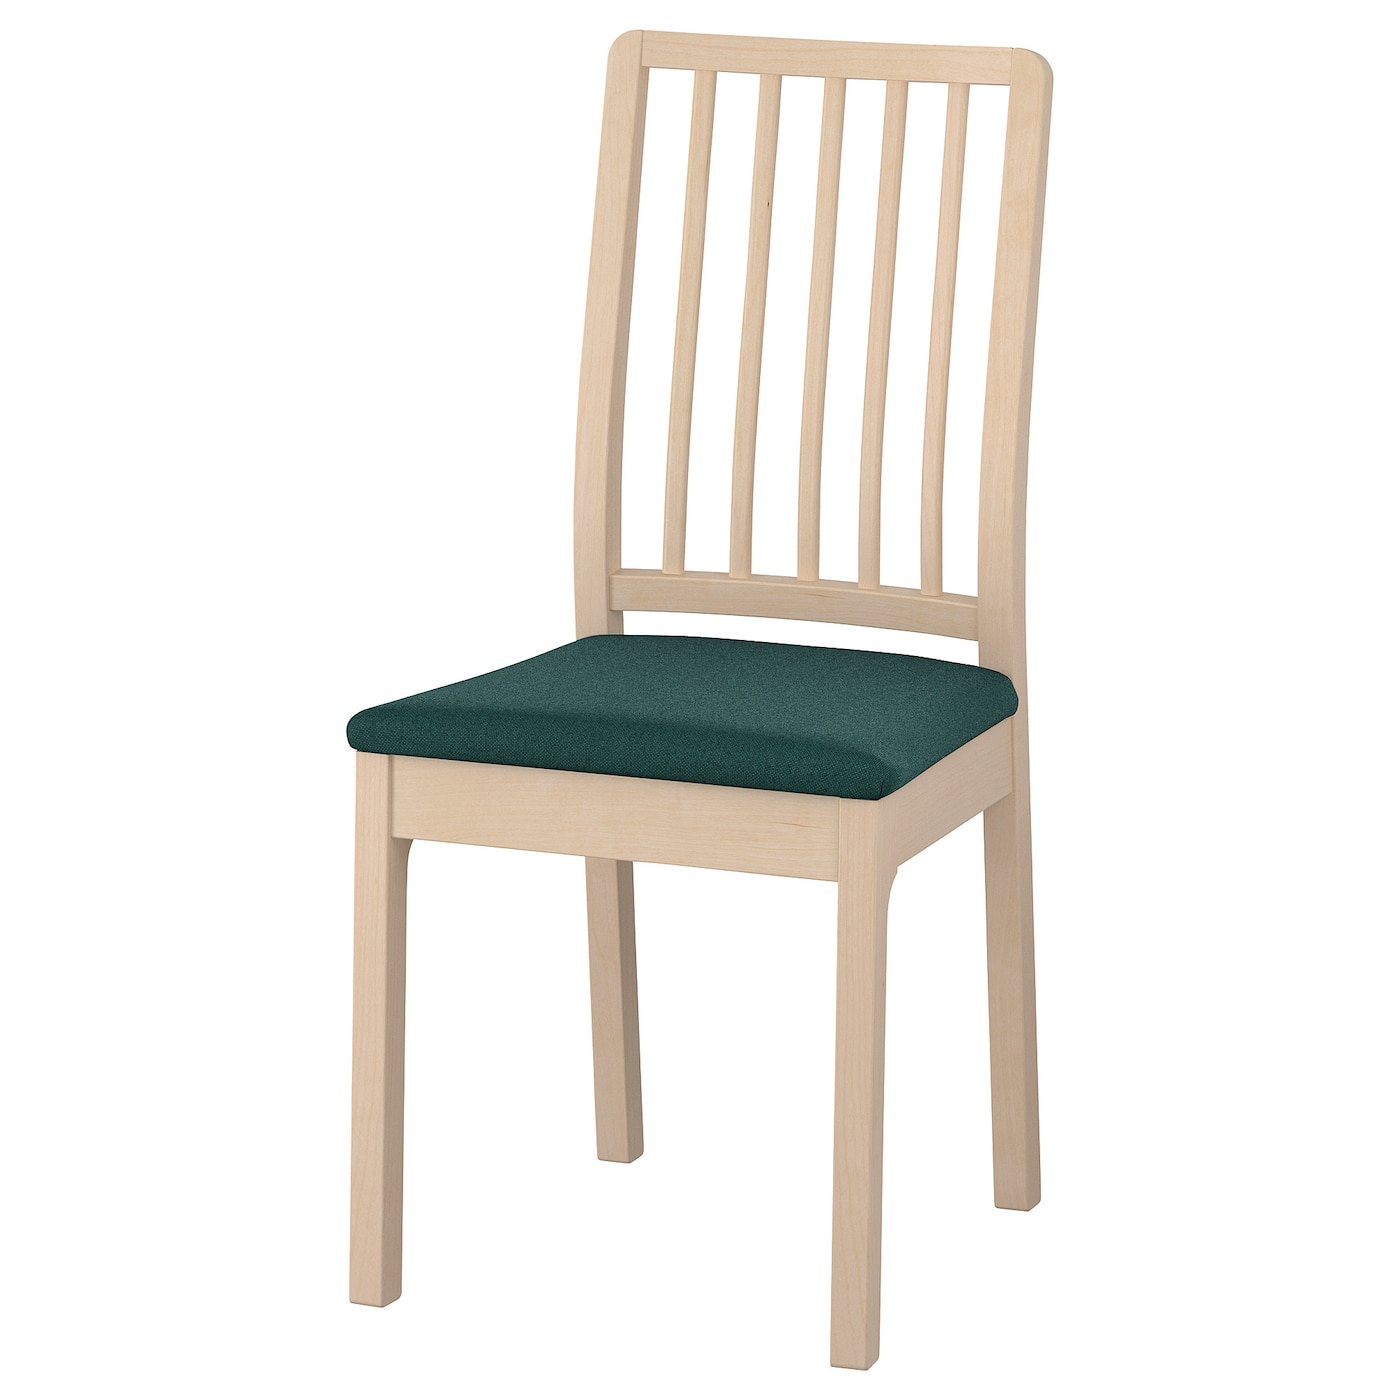 Ekedalen chair birch gunnared dark green ikea for Sedie in legno ikea